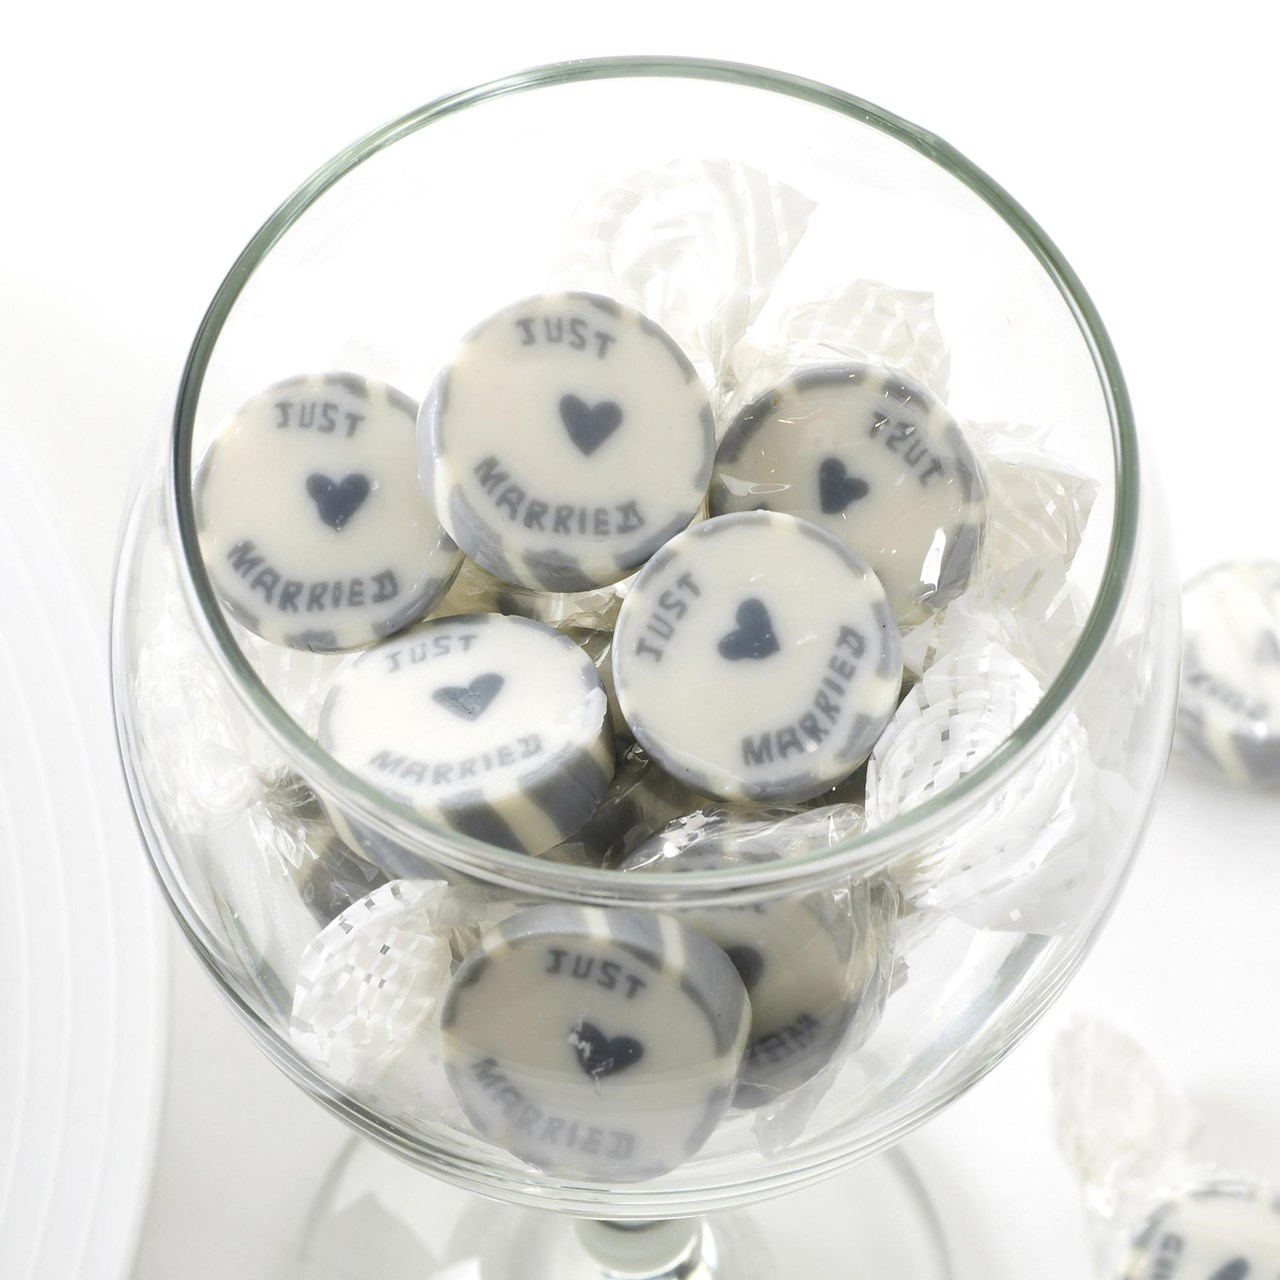 Mr /& Mrs Rock Sweets Wedding Favours 3 x 215g bags